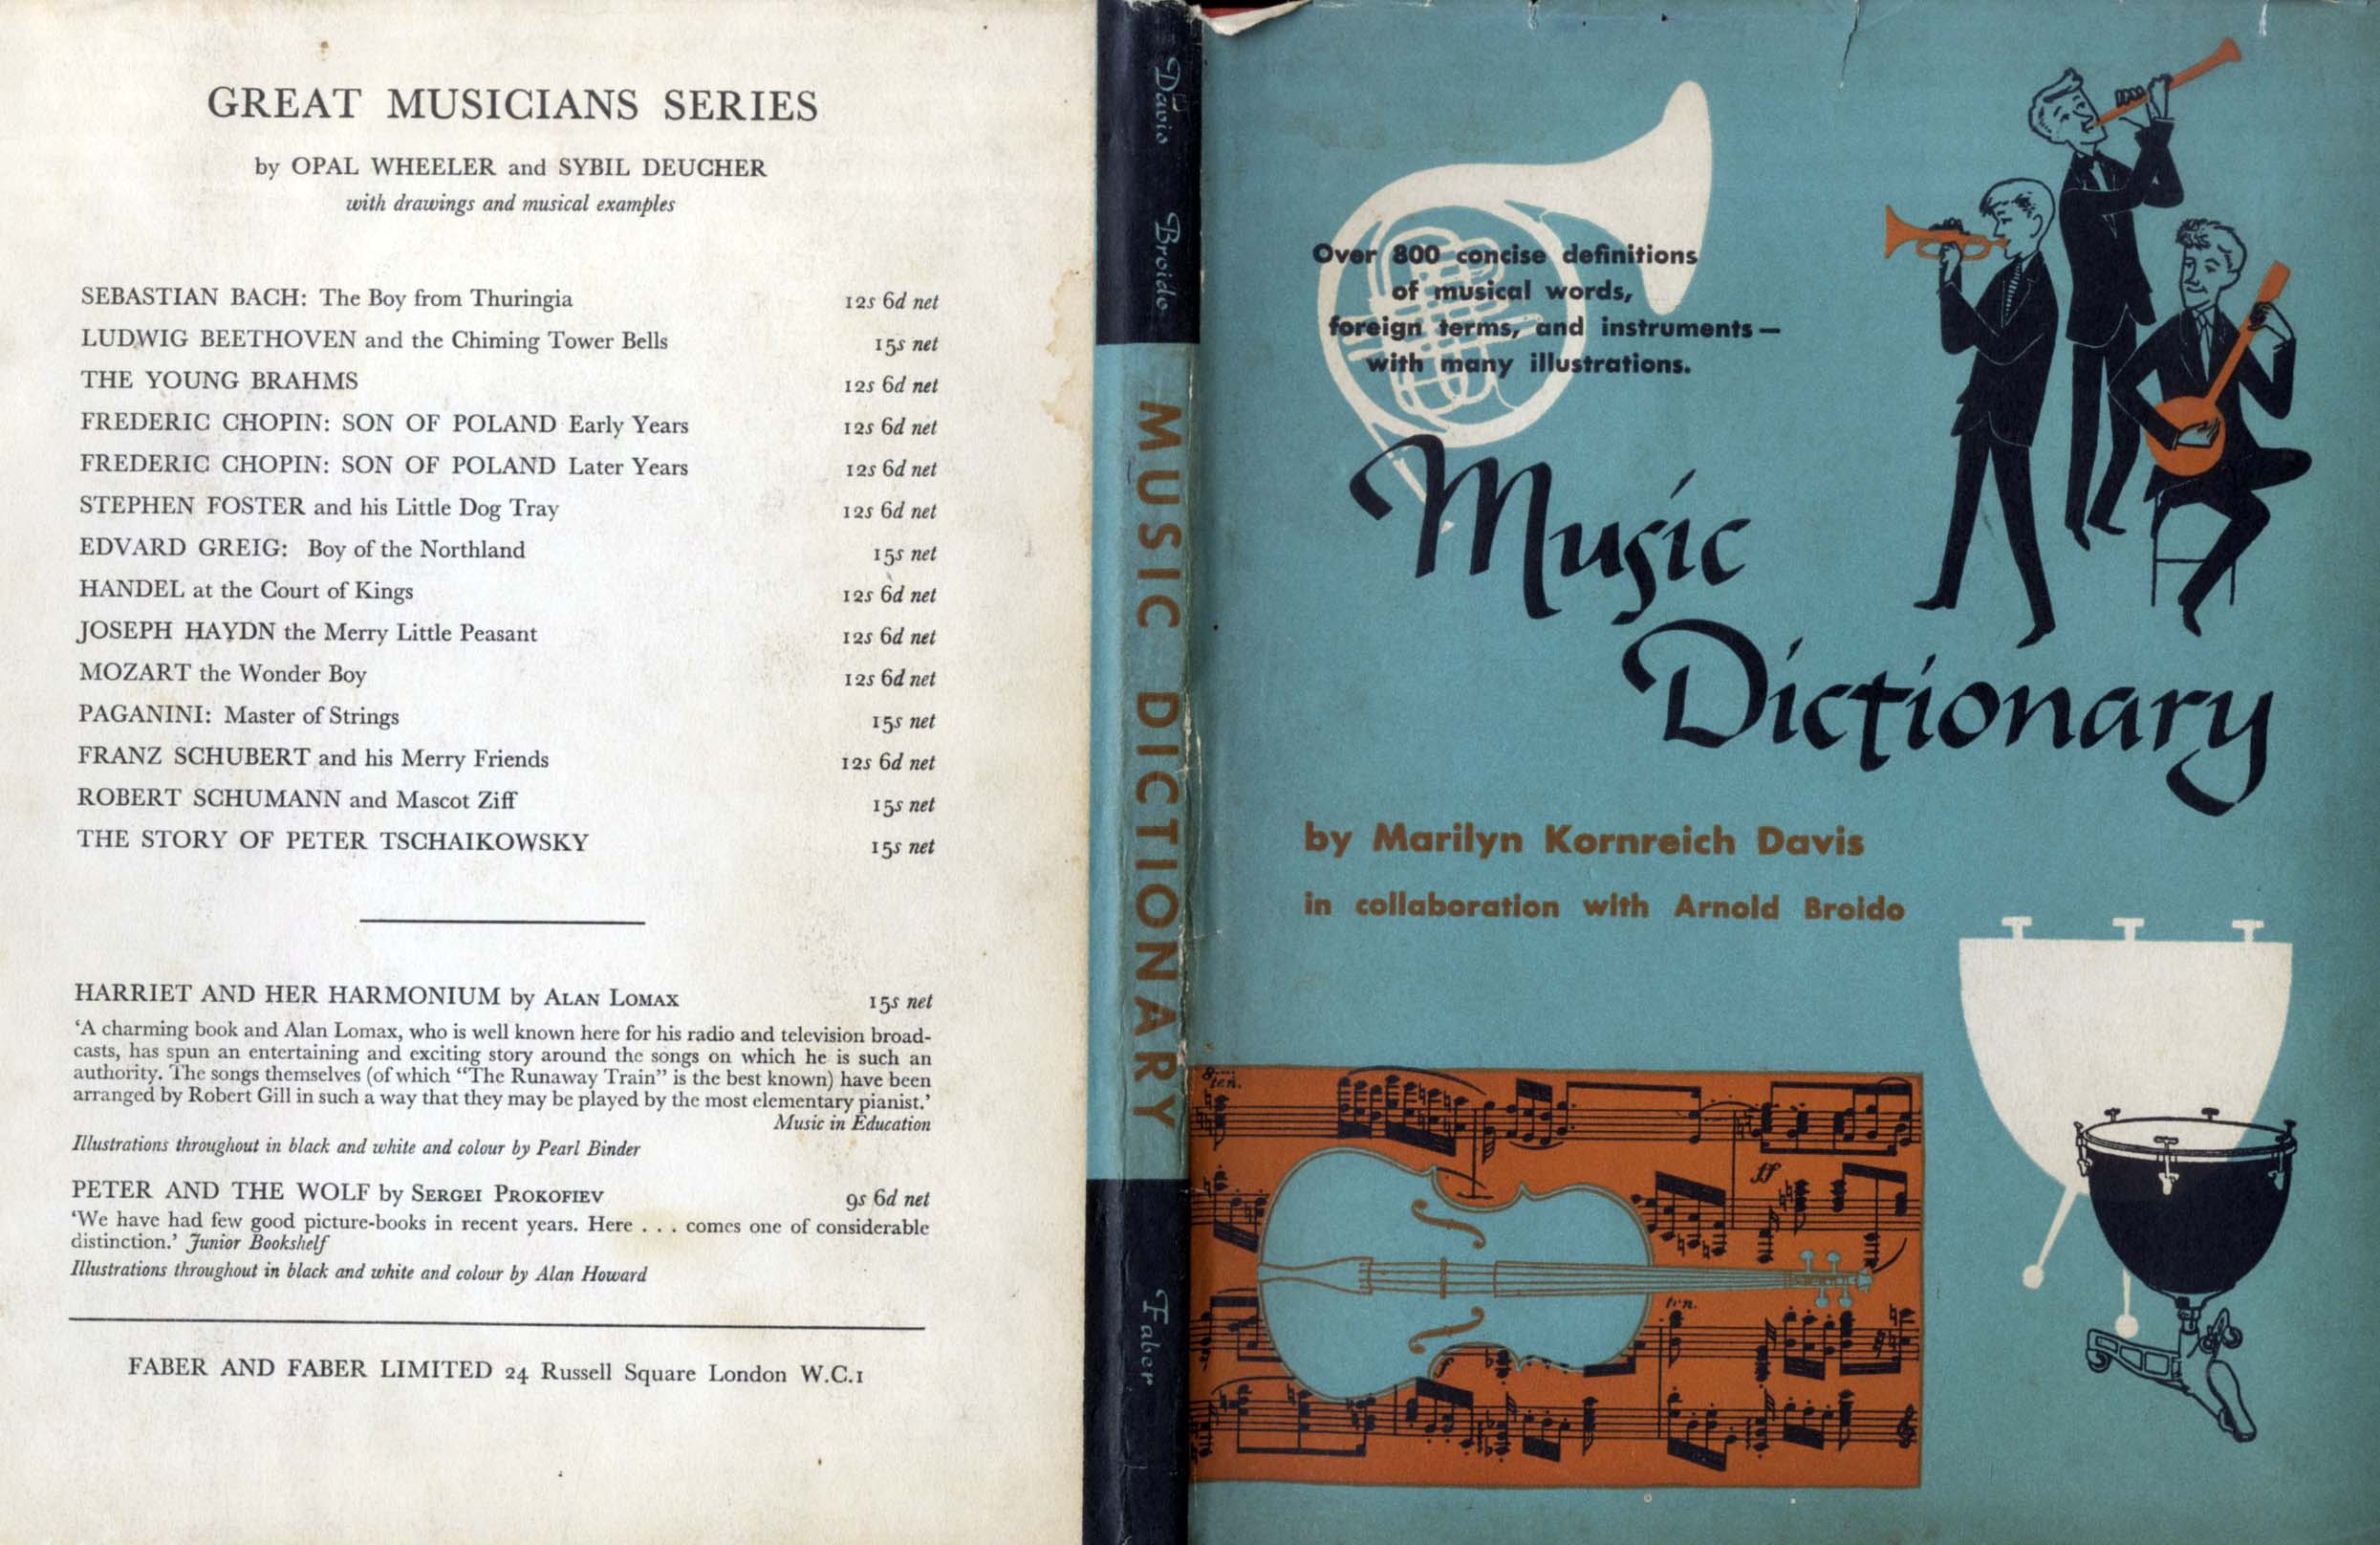 Musical Notation, Winifred Greene, The Music Dictionary